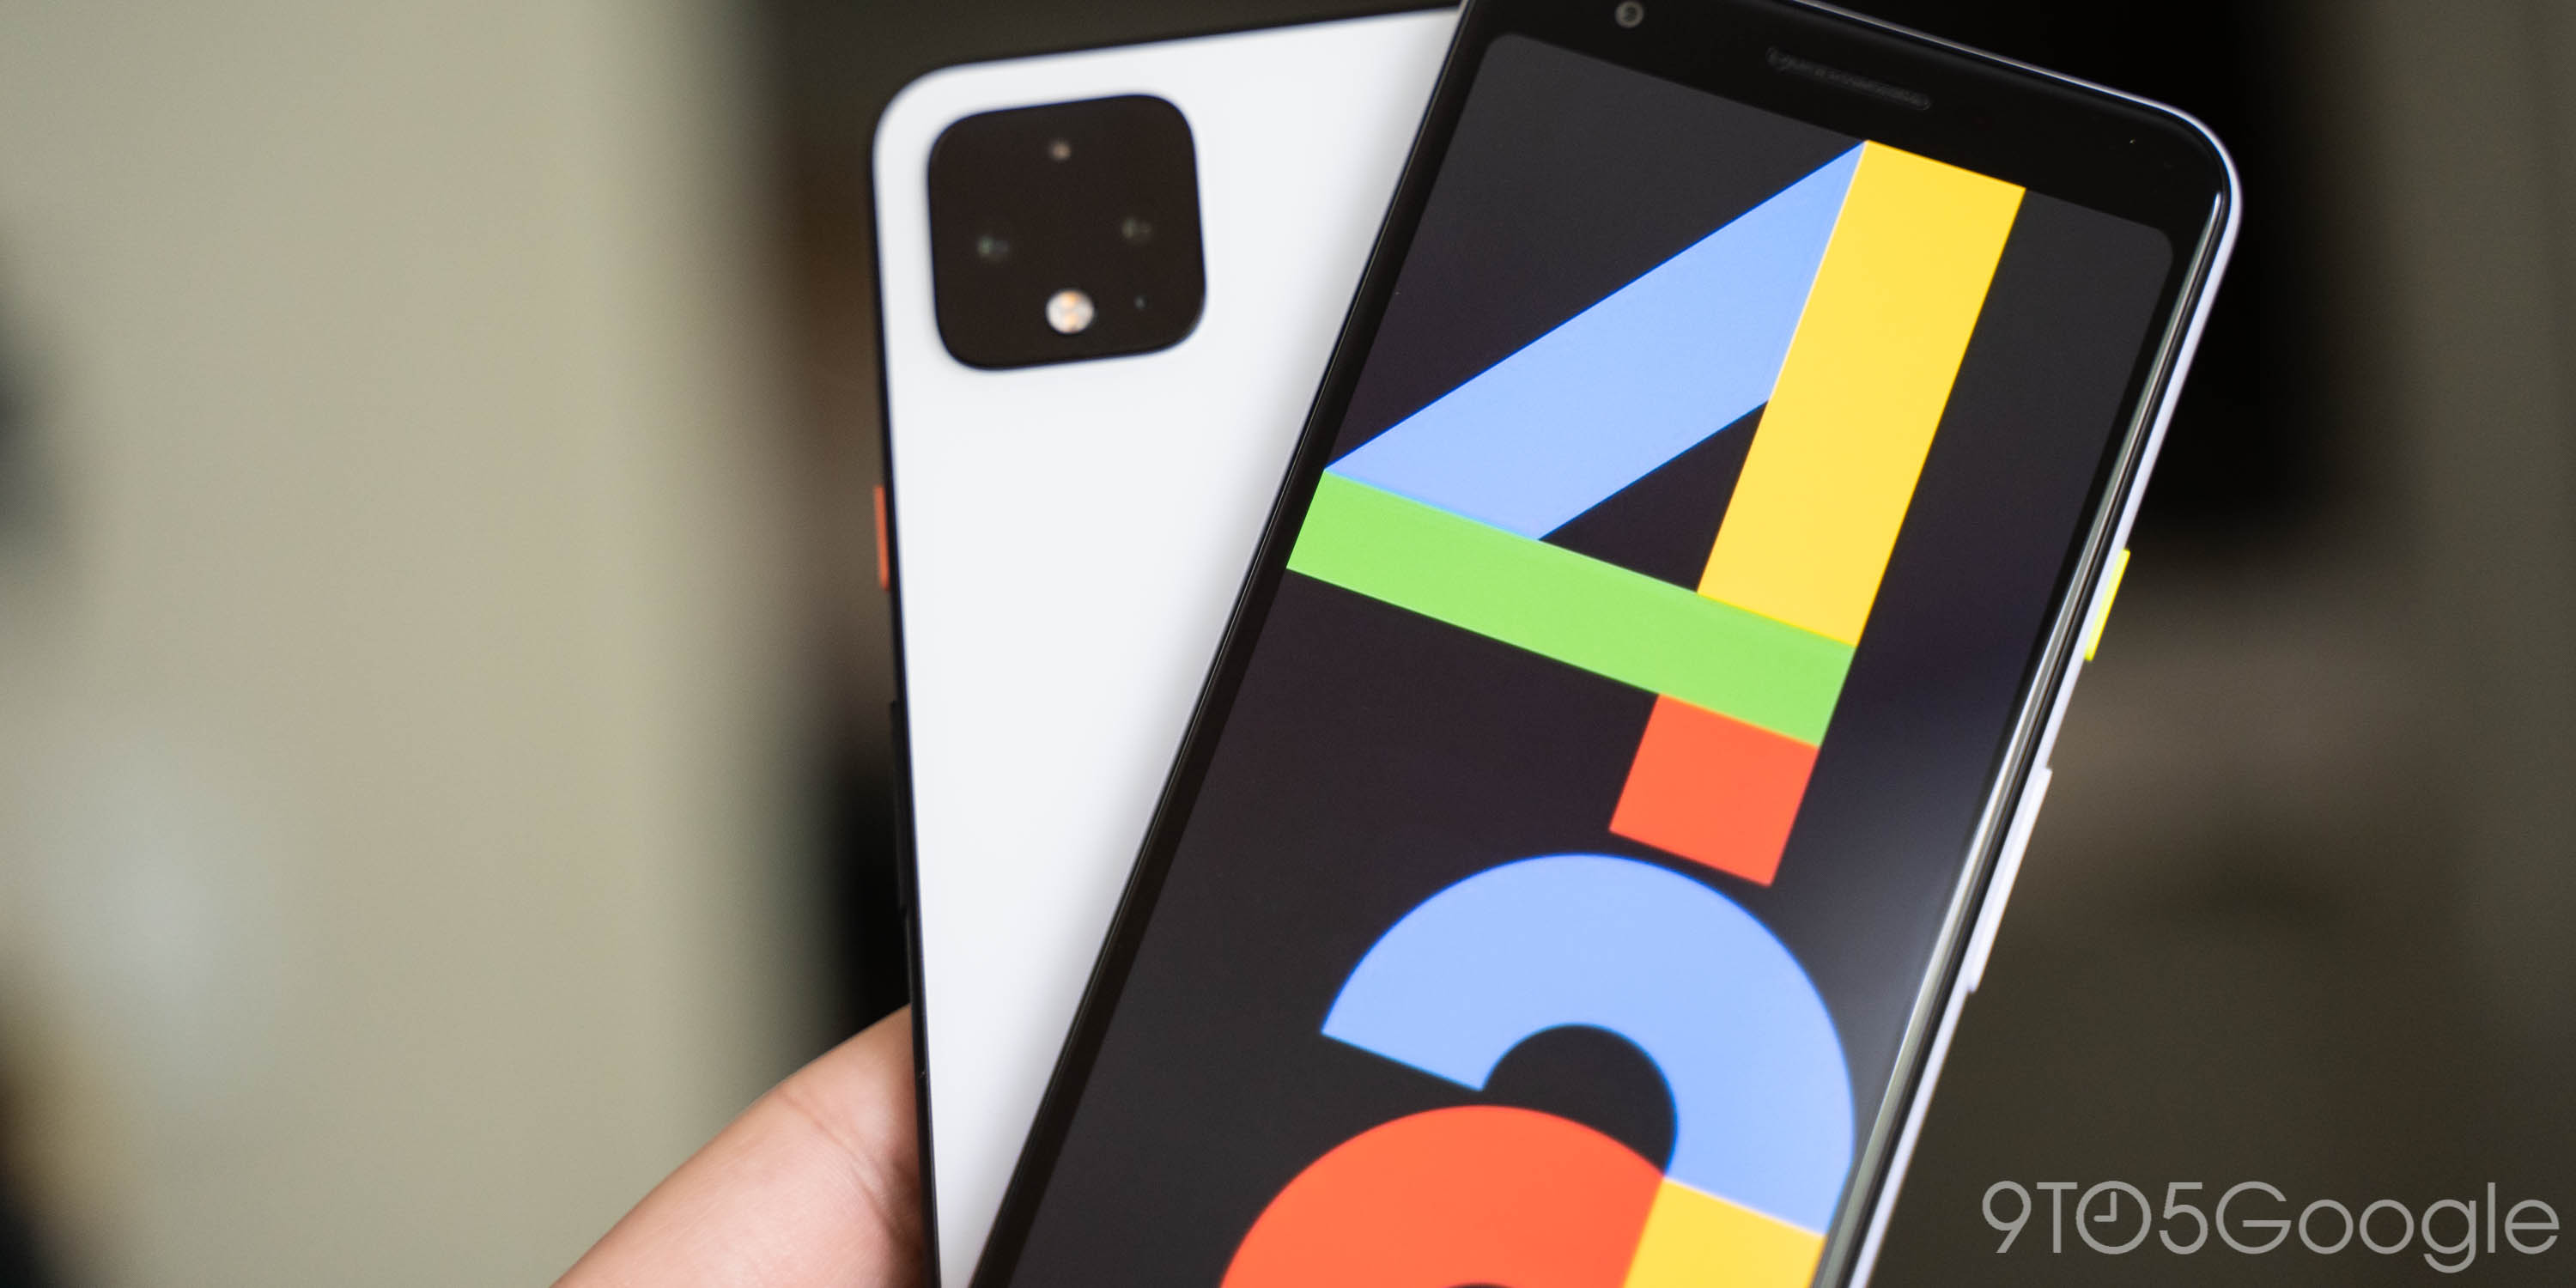 google pixel 4a wallpaper leak jpg?quality=82&strip=all.'